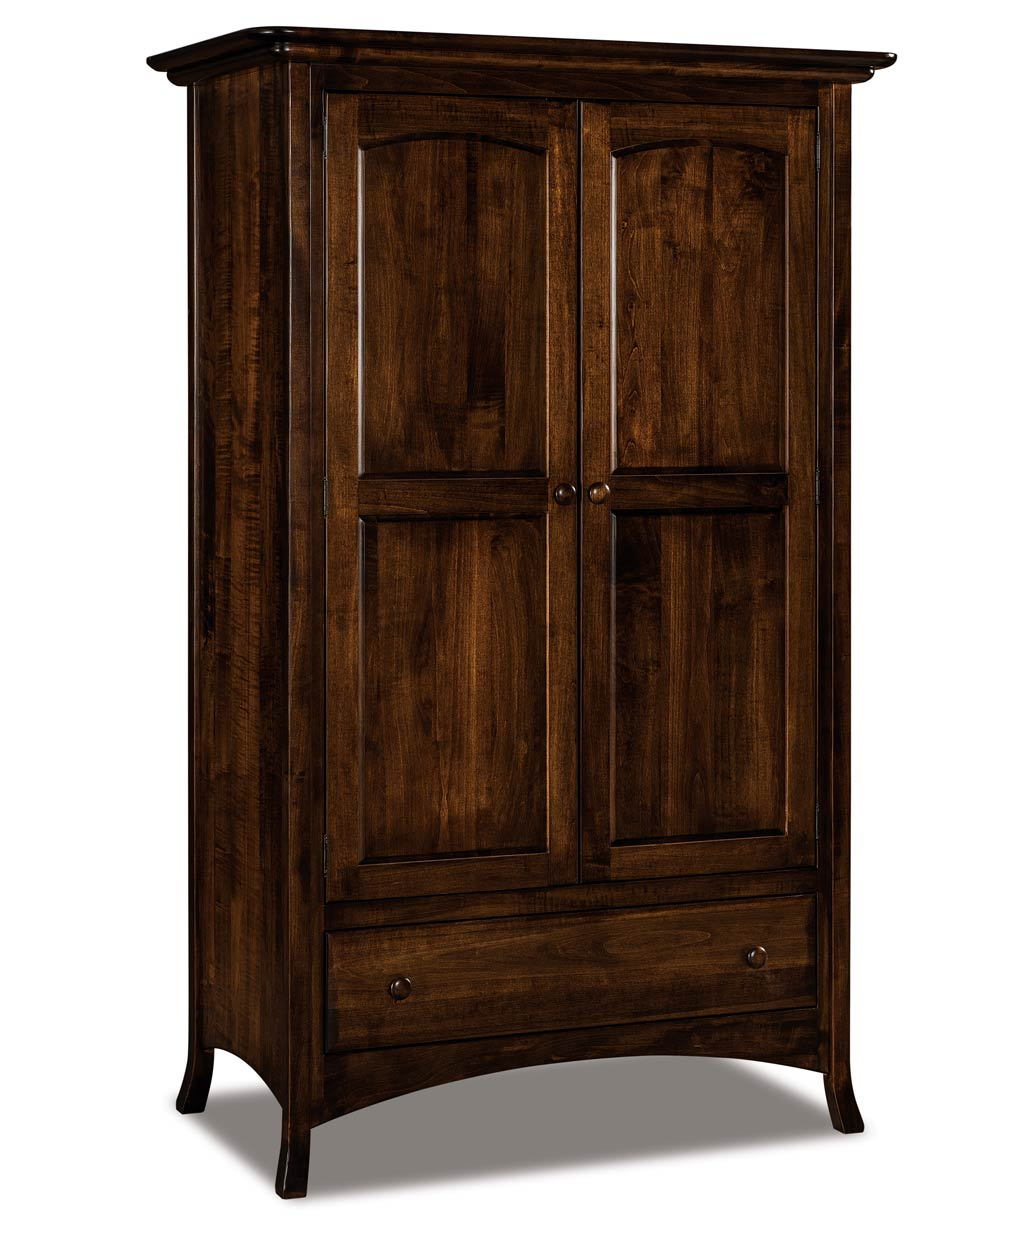 carlisle wardrobe armoire amish direct furniture. Black Bedroom Furniture Sets. Home Design Ideas